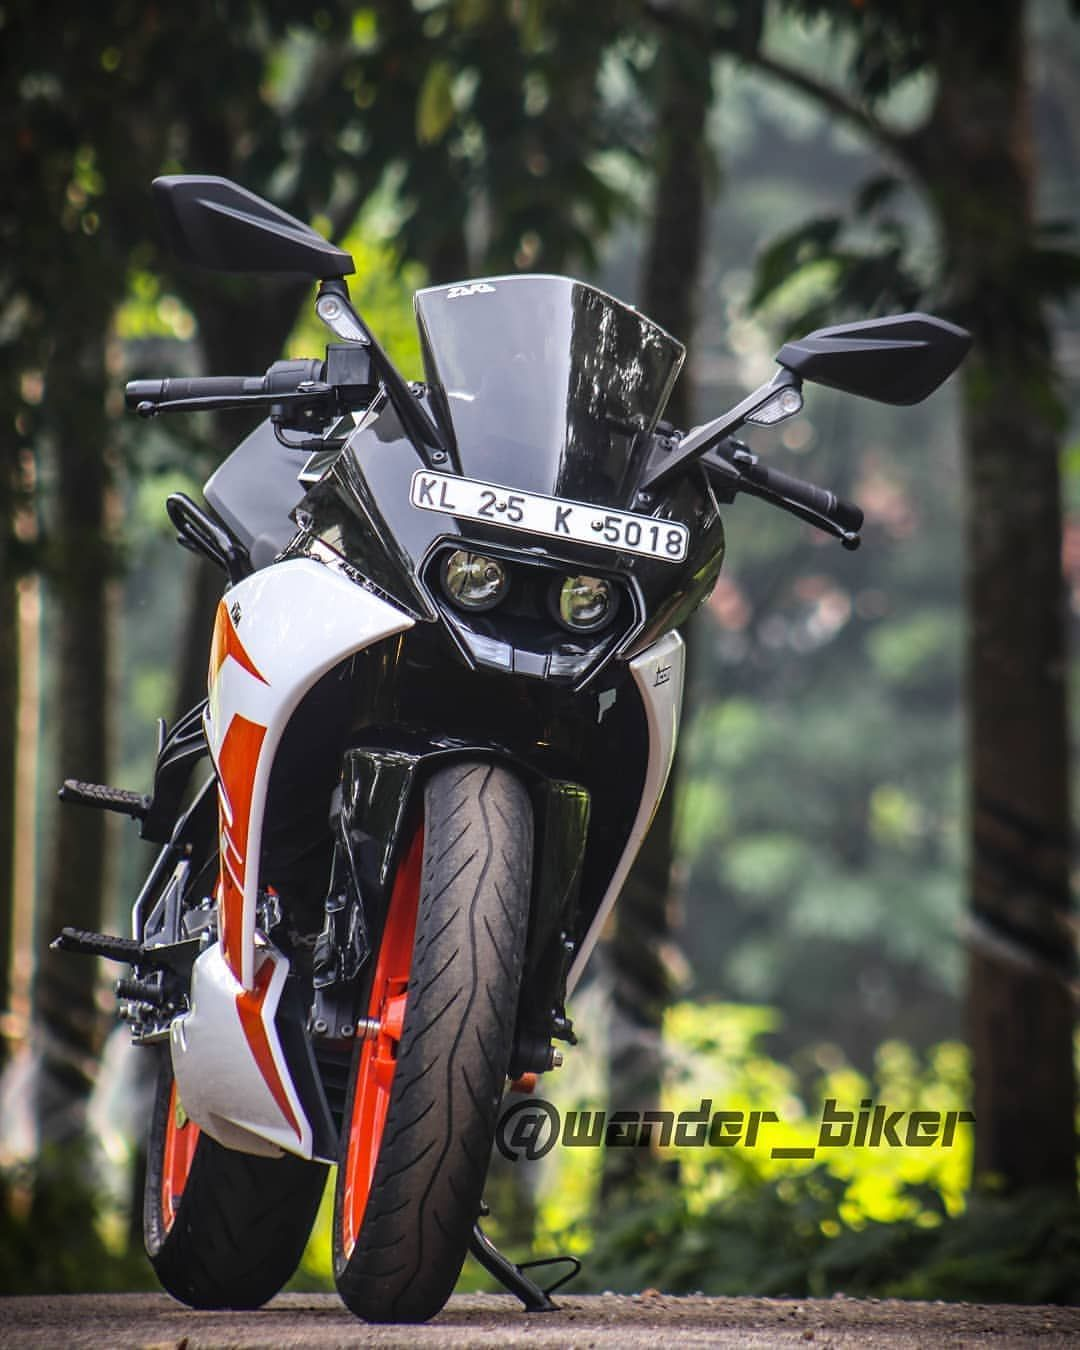 New Rc200 Follow Us To Get Updates From The Exciting World Of Ktm Ktmindia Official Ktmindia Ktmindiaofficial Ktmofficial Ktm Ktm Bike Rc 200 Download ktm rc modified wallpaper